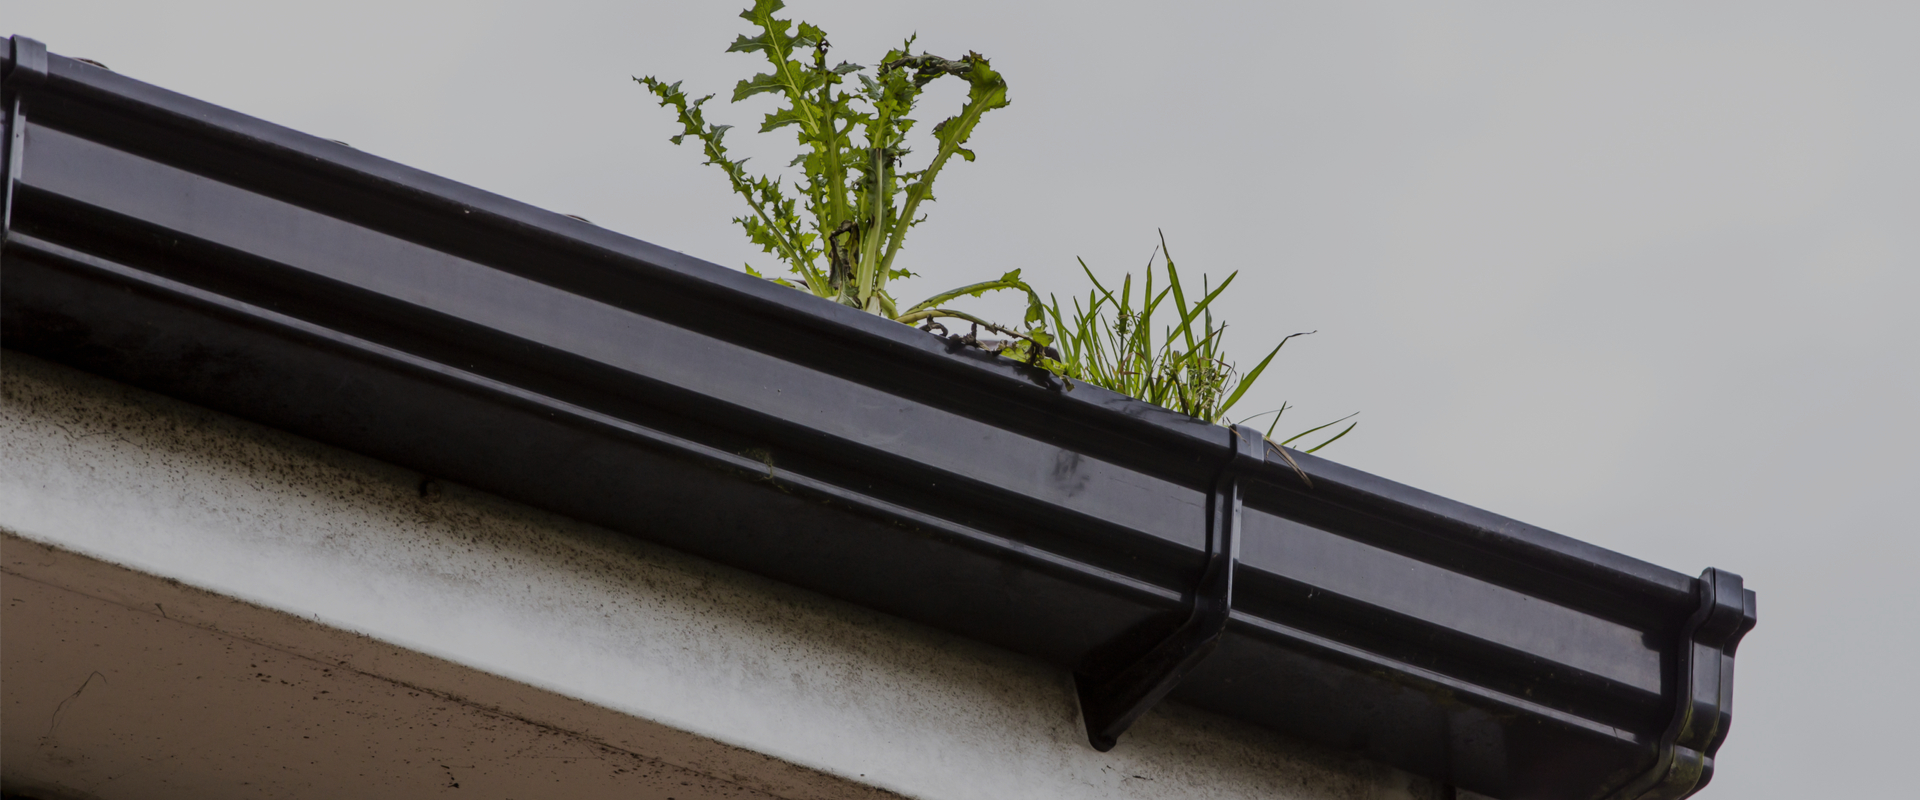 Professional, Effective Gutter Cleaning